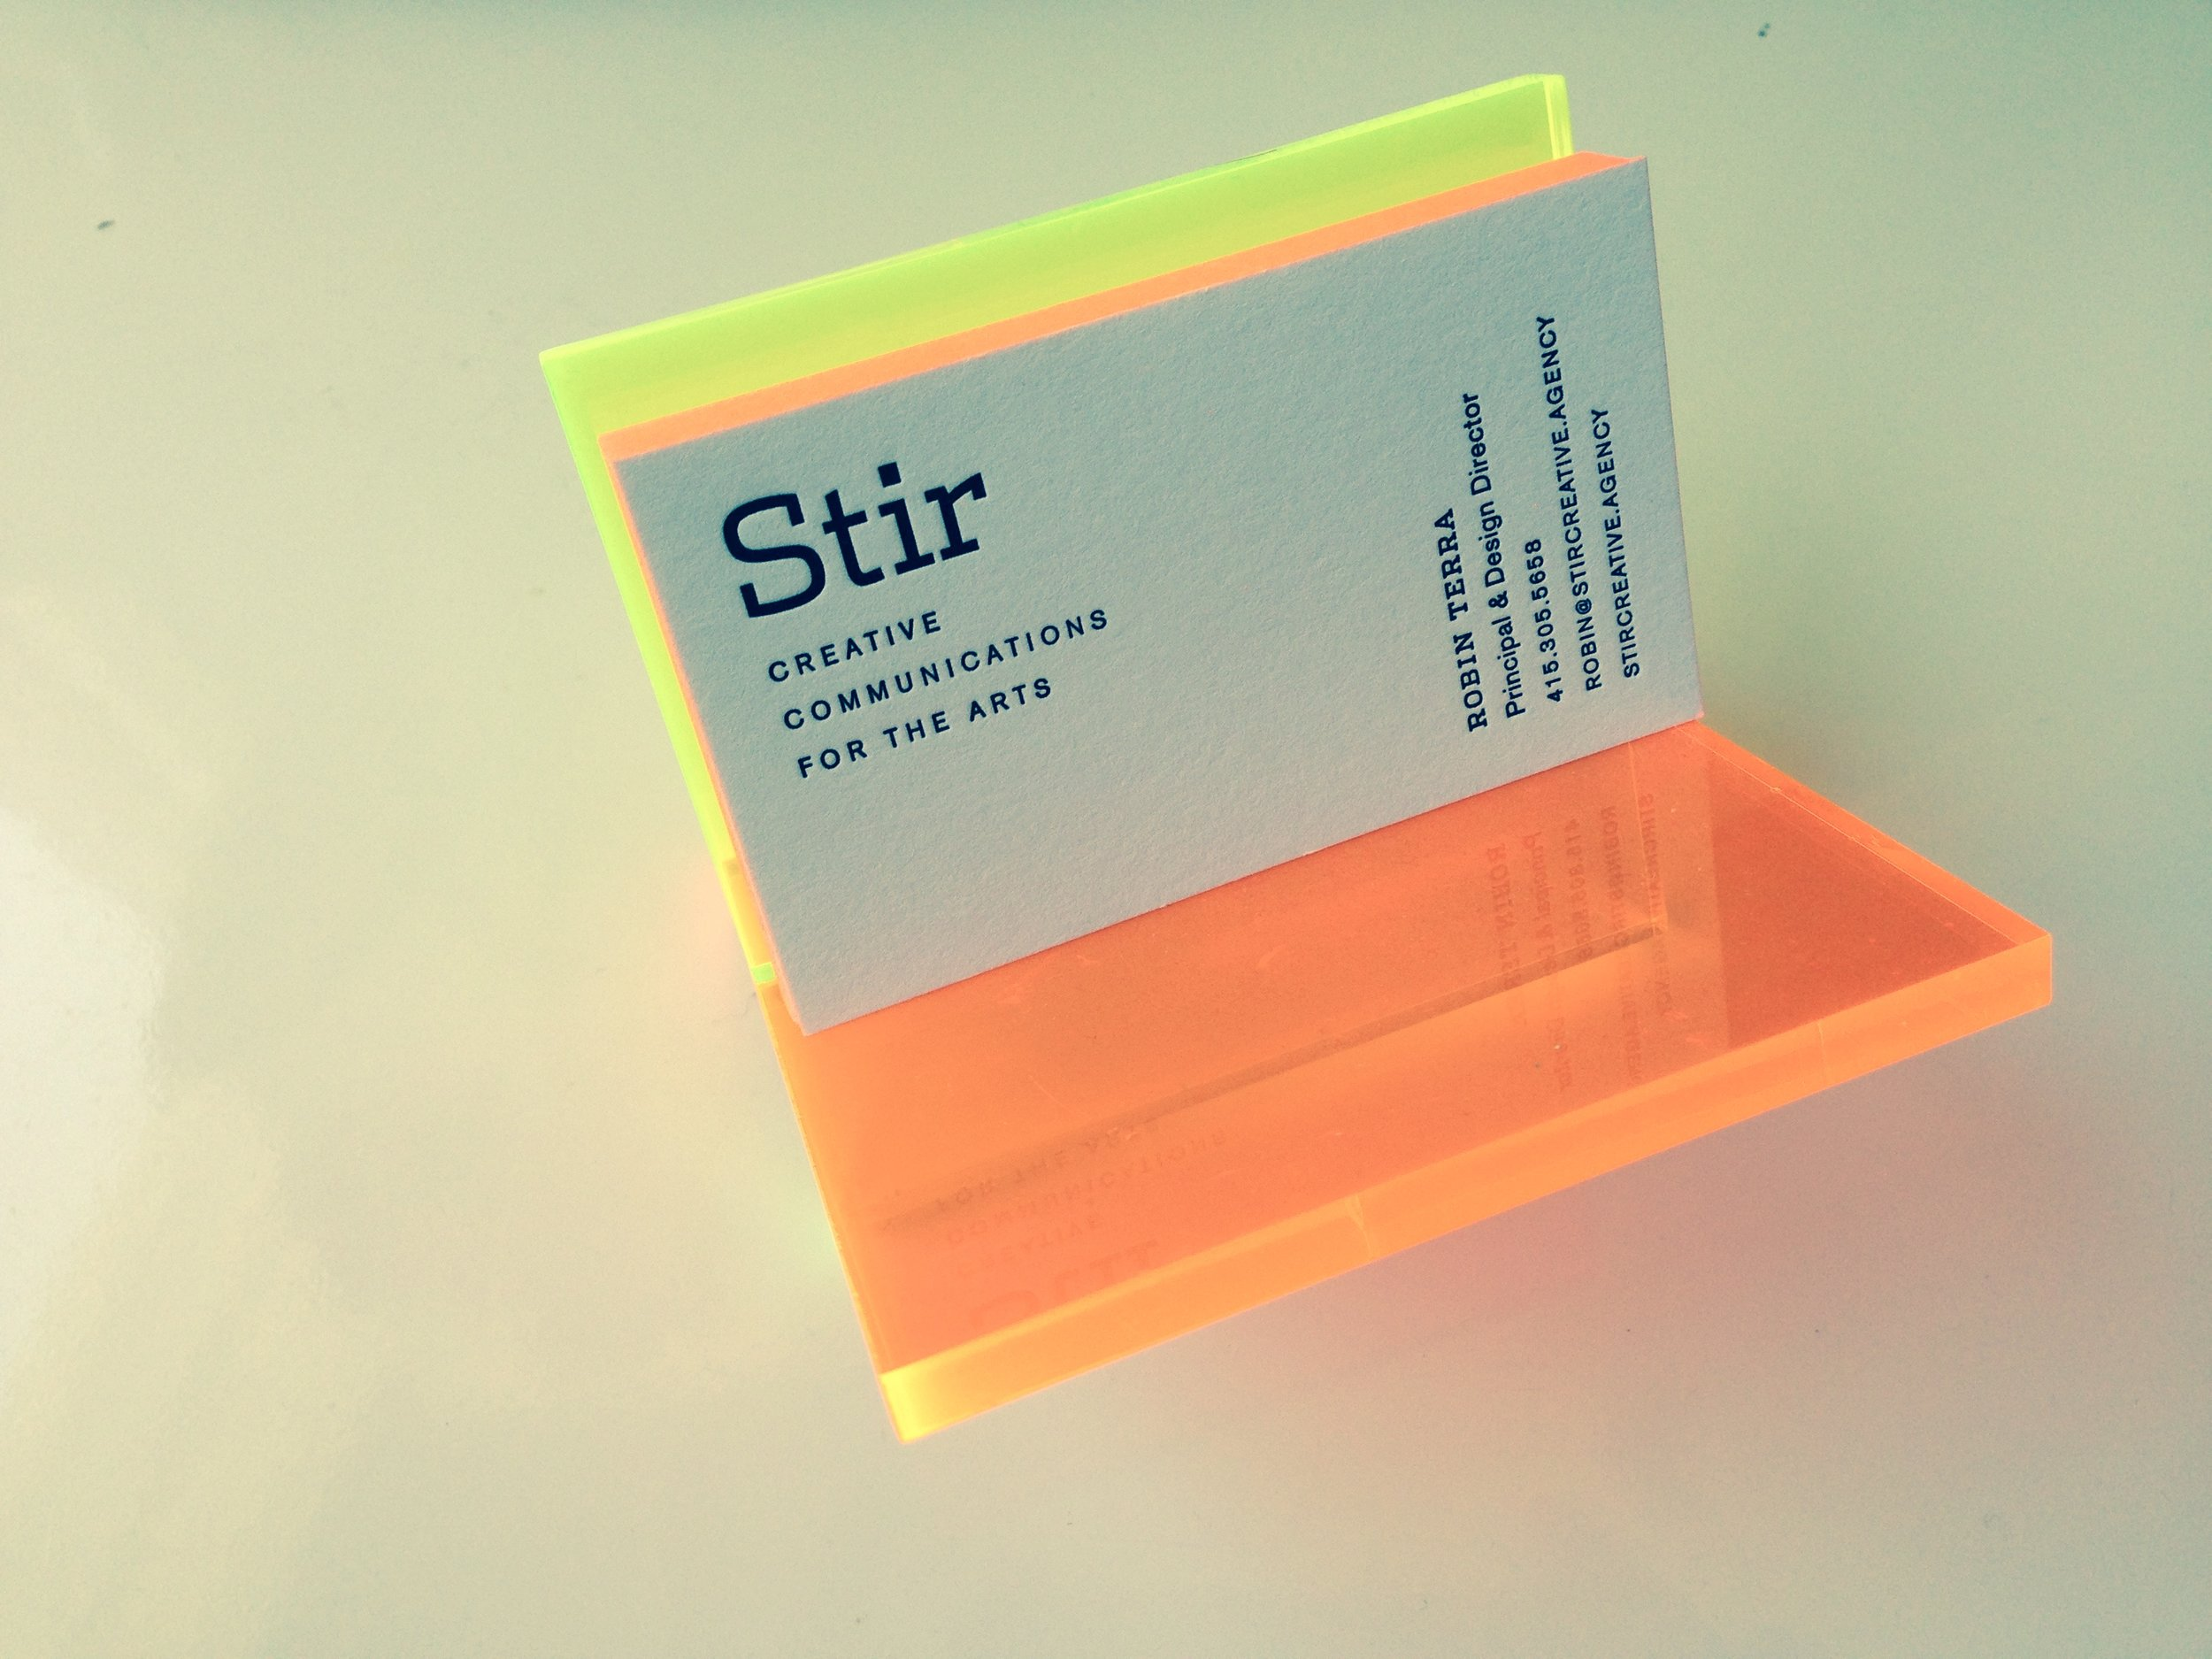 I loved our business cards with their neon orange edges and letterpress type.